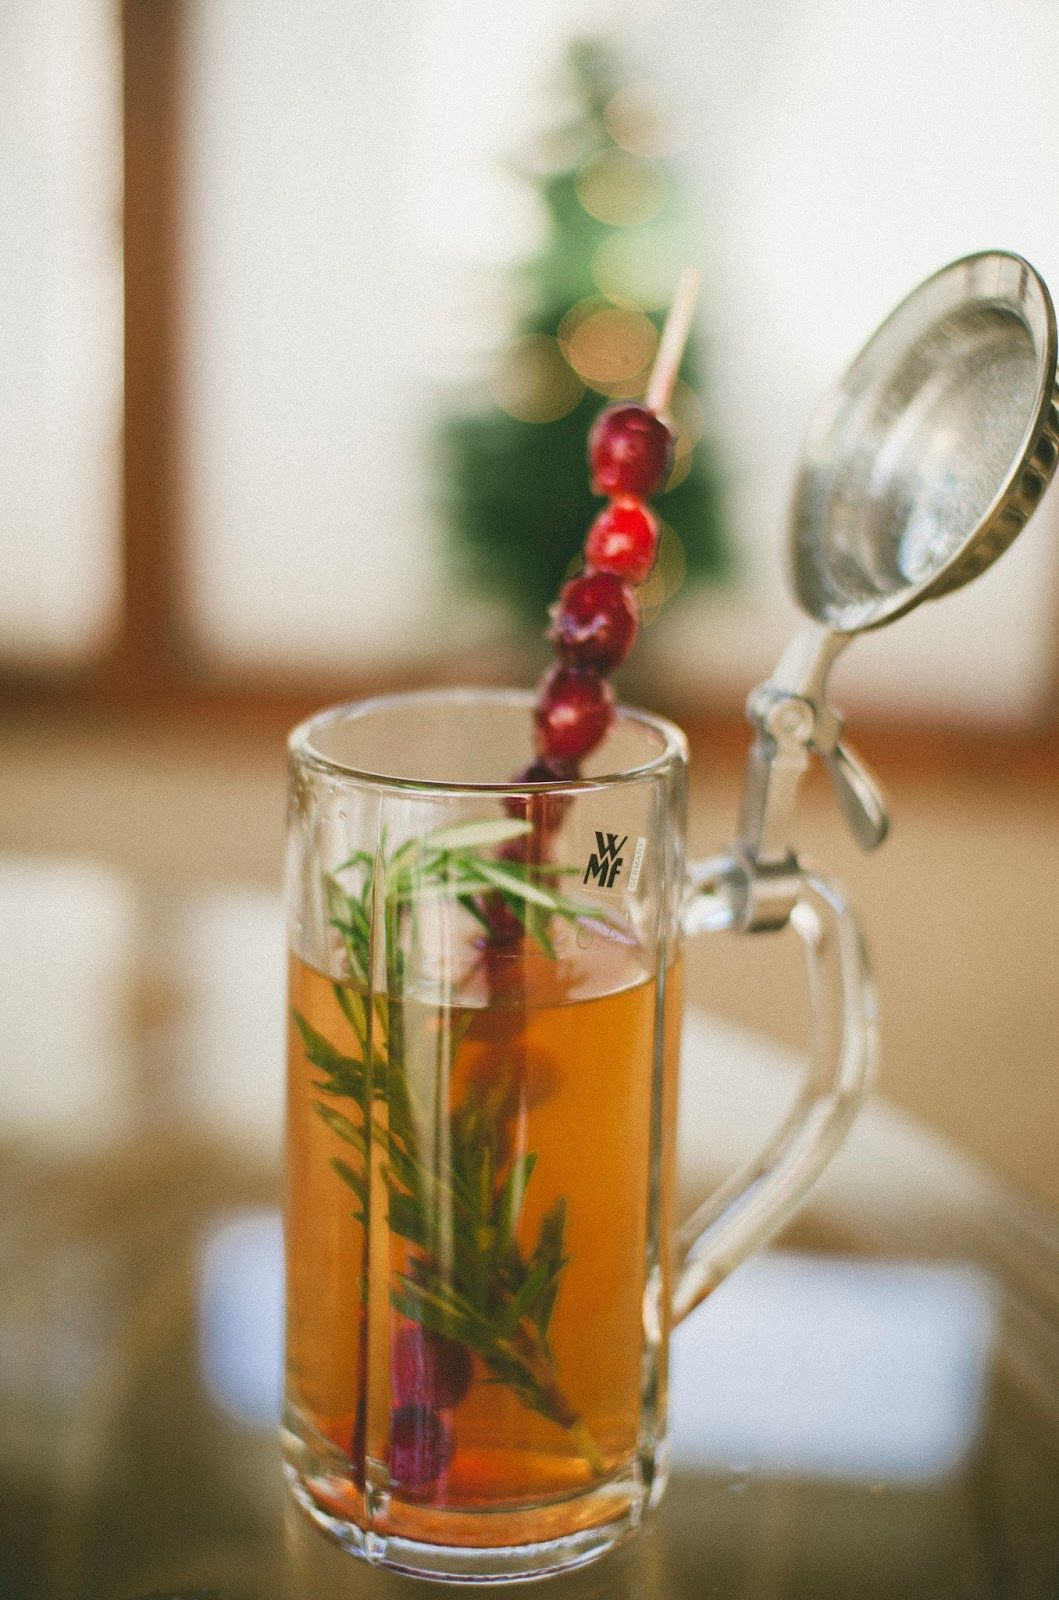 Hot Ginger and Rhubarb Tea Cocktail